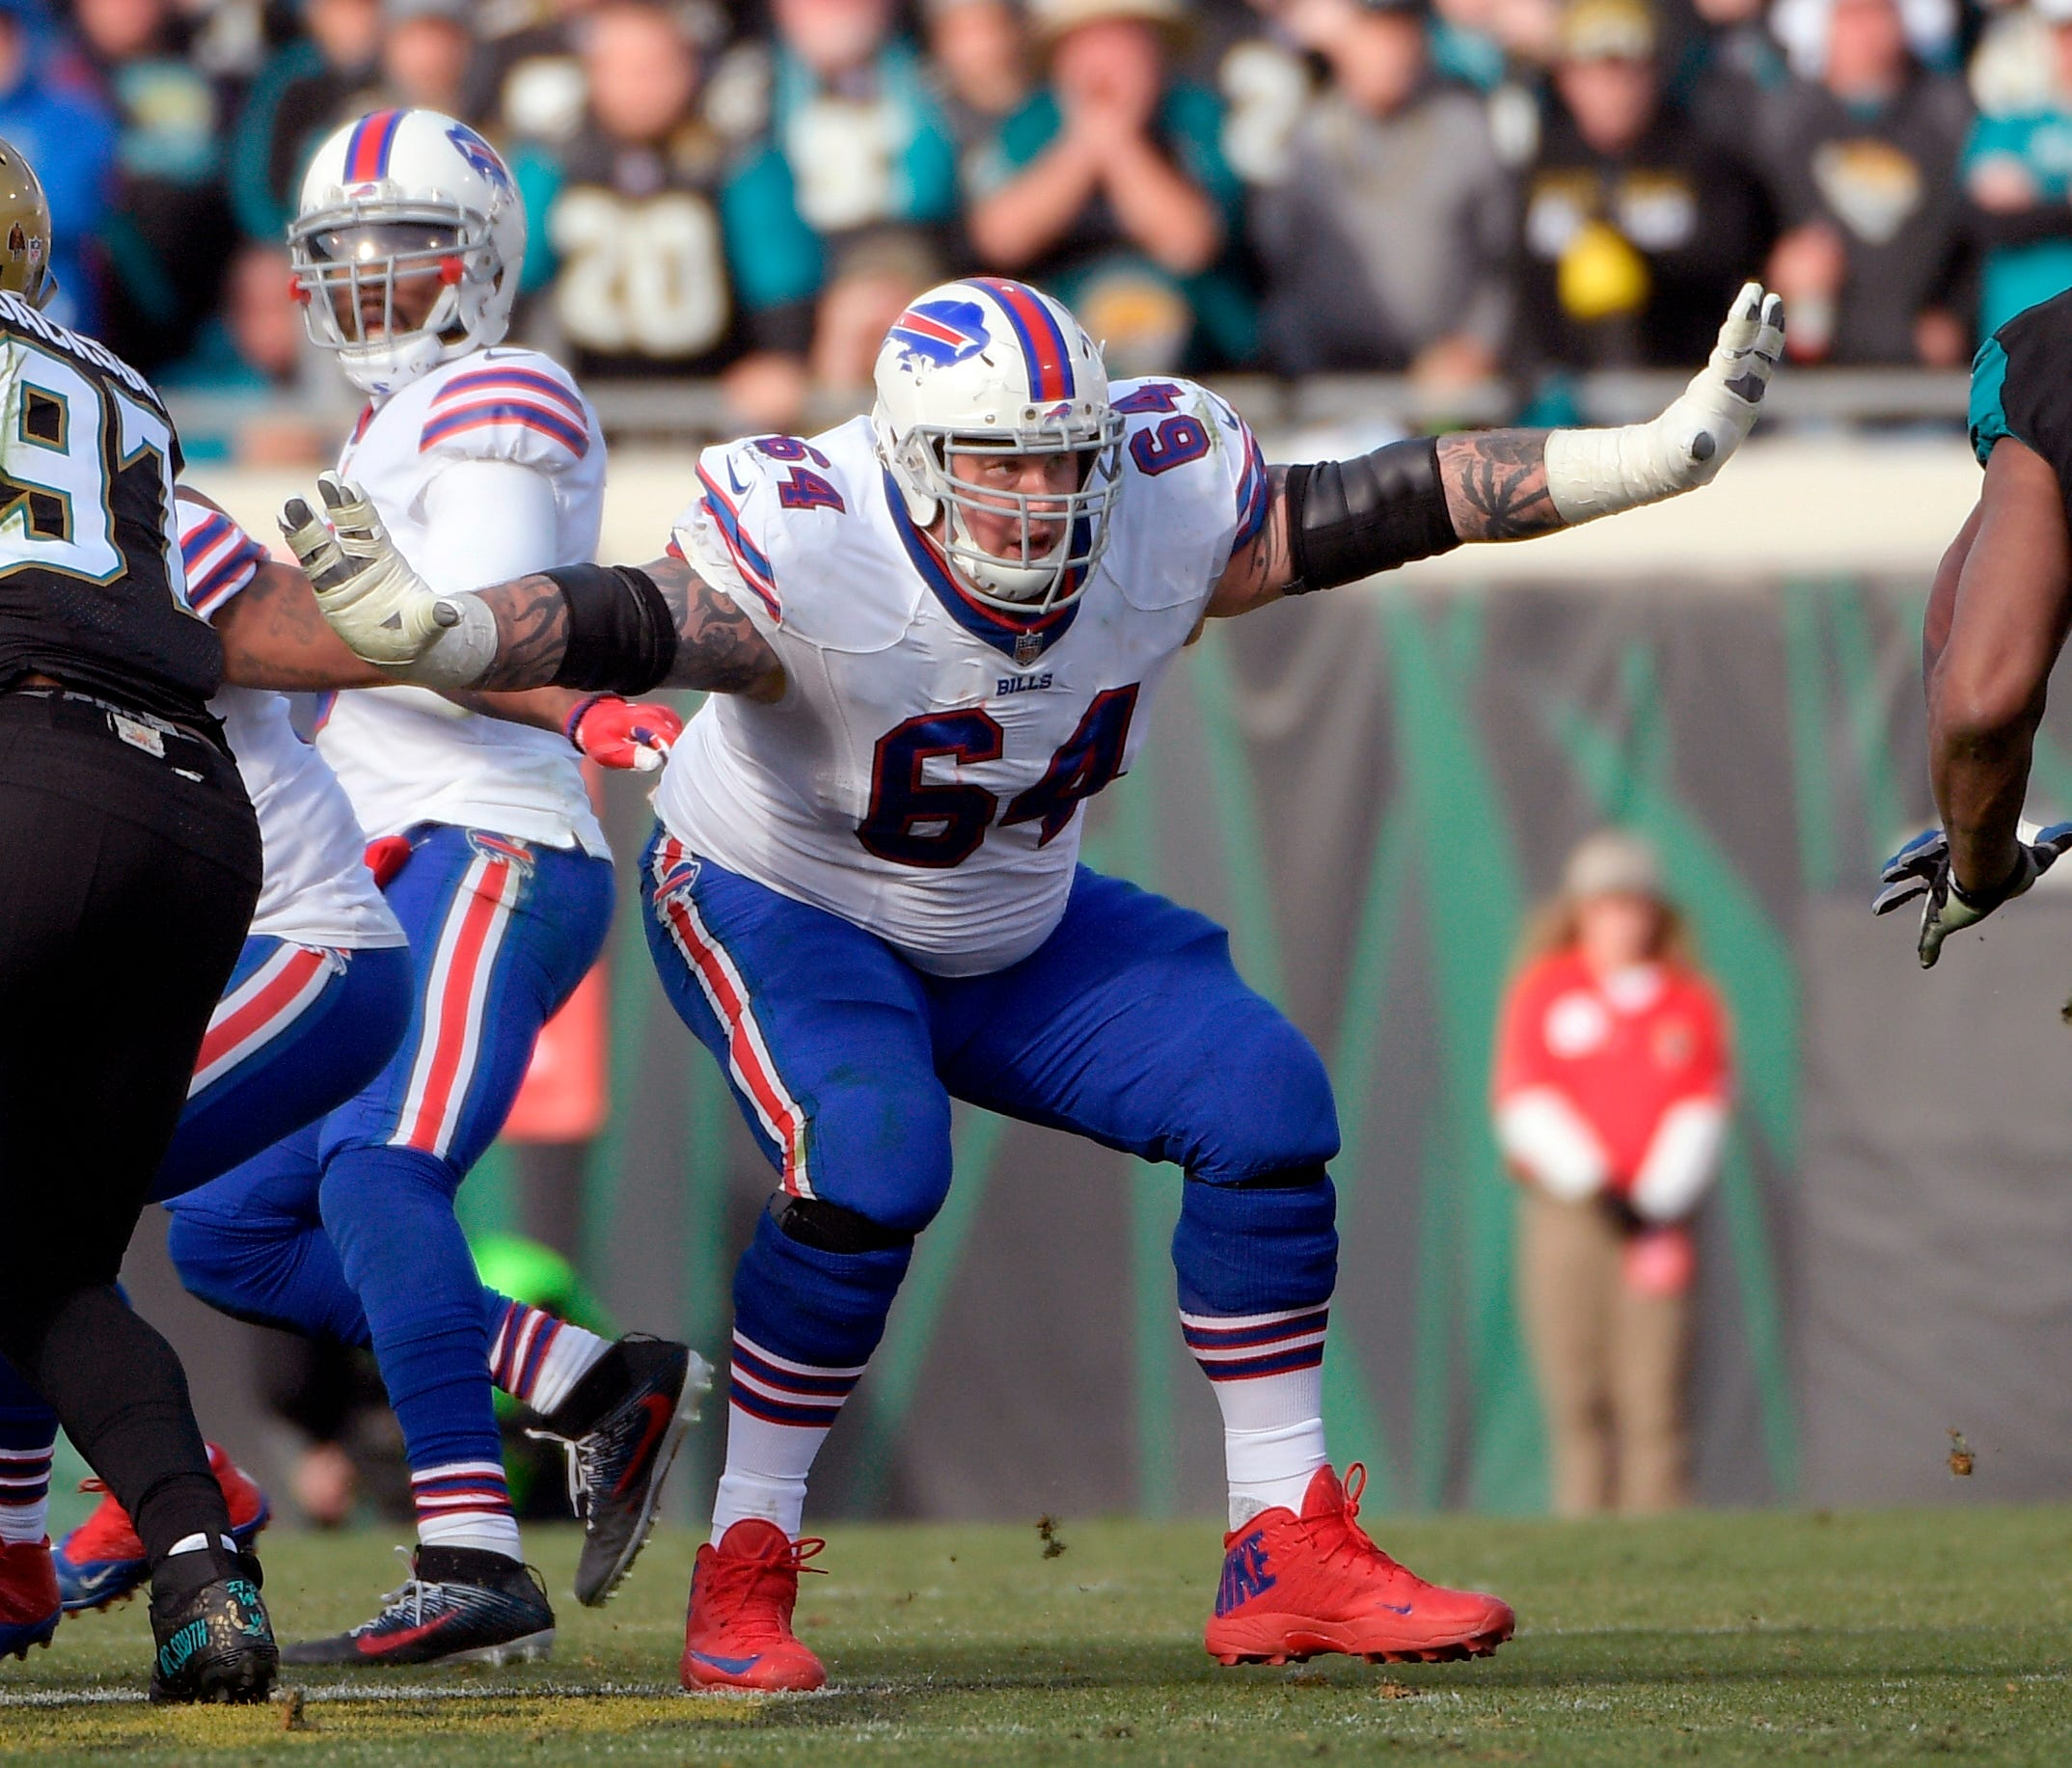 Richie Incognito joins anti-bullying campaign five years after Jonathan Martin incident